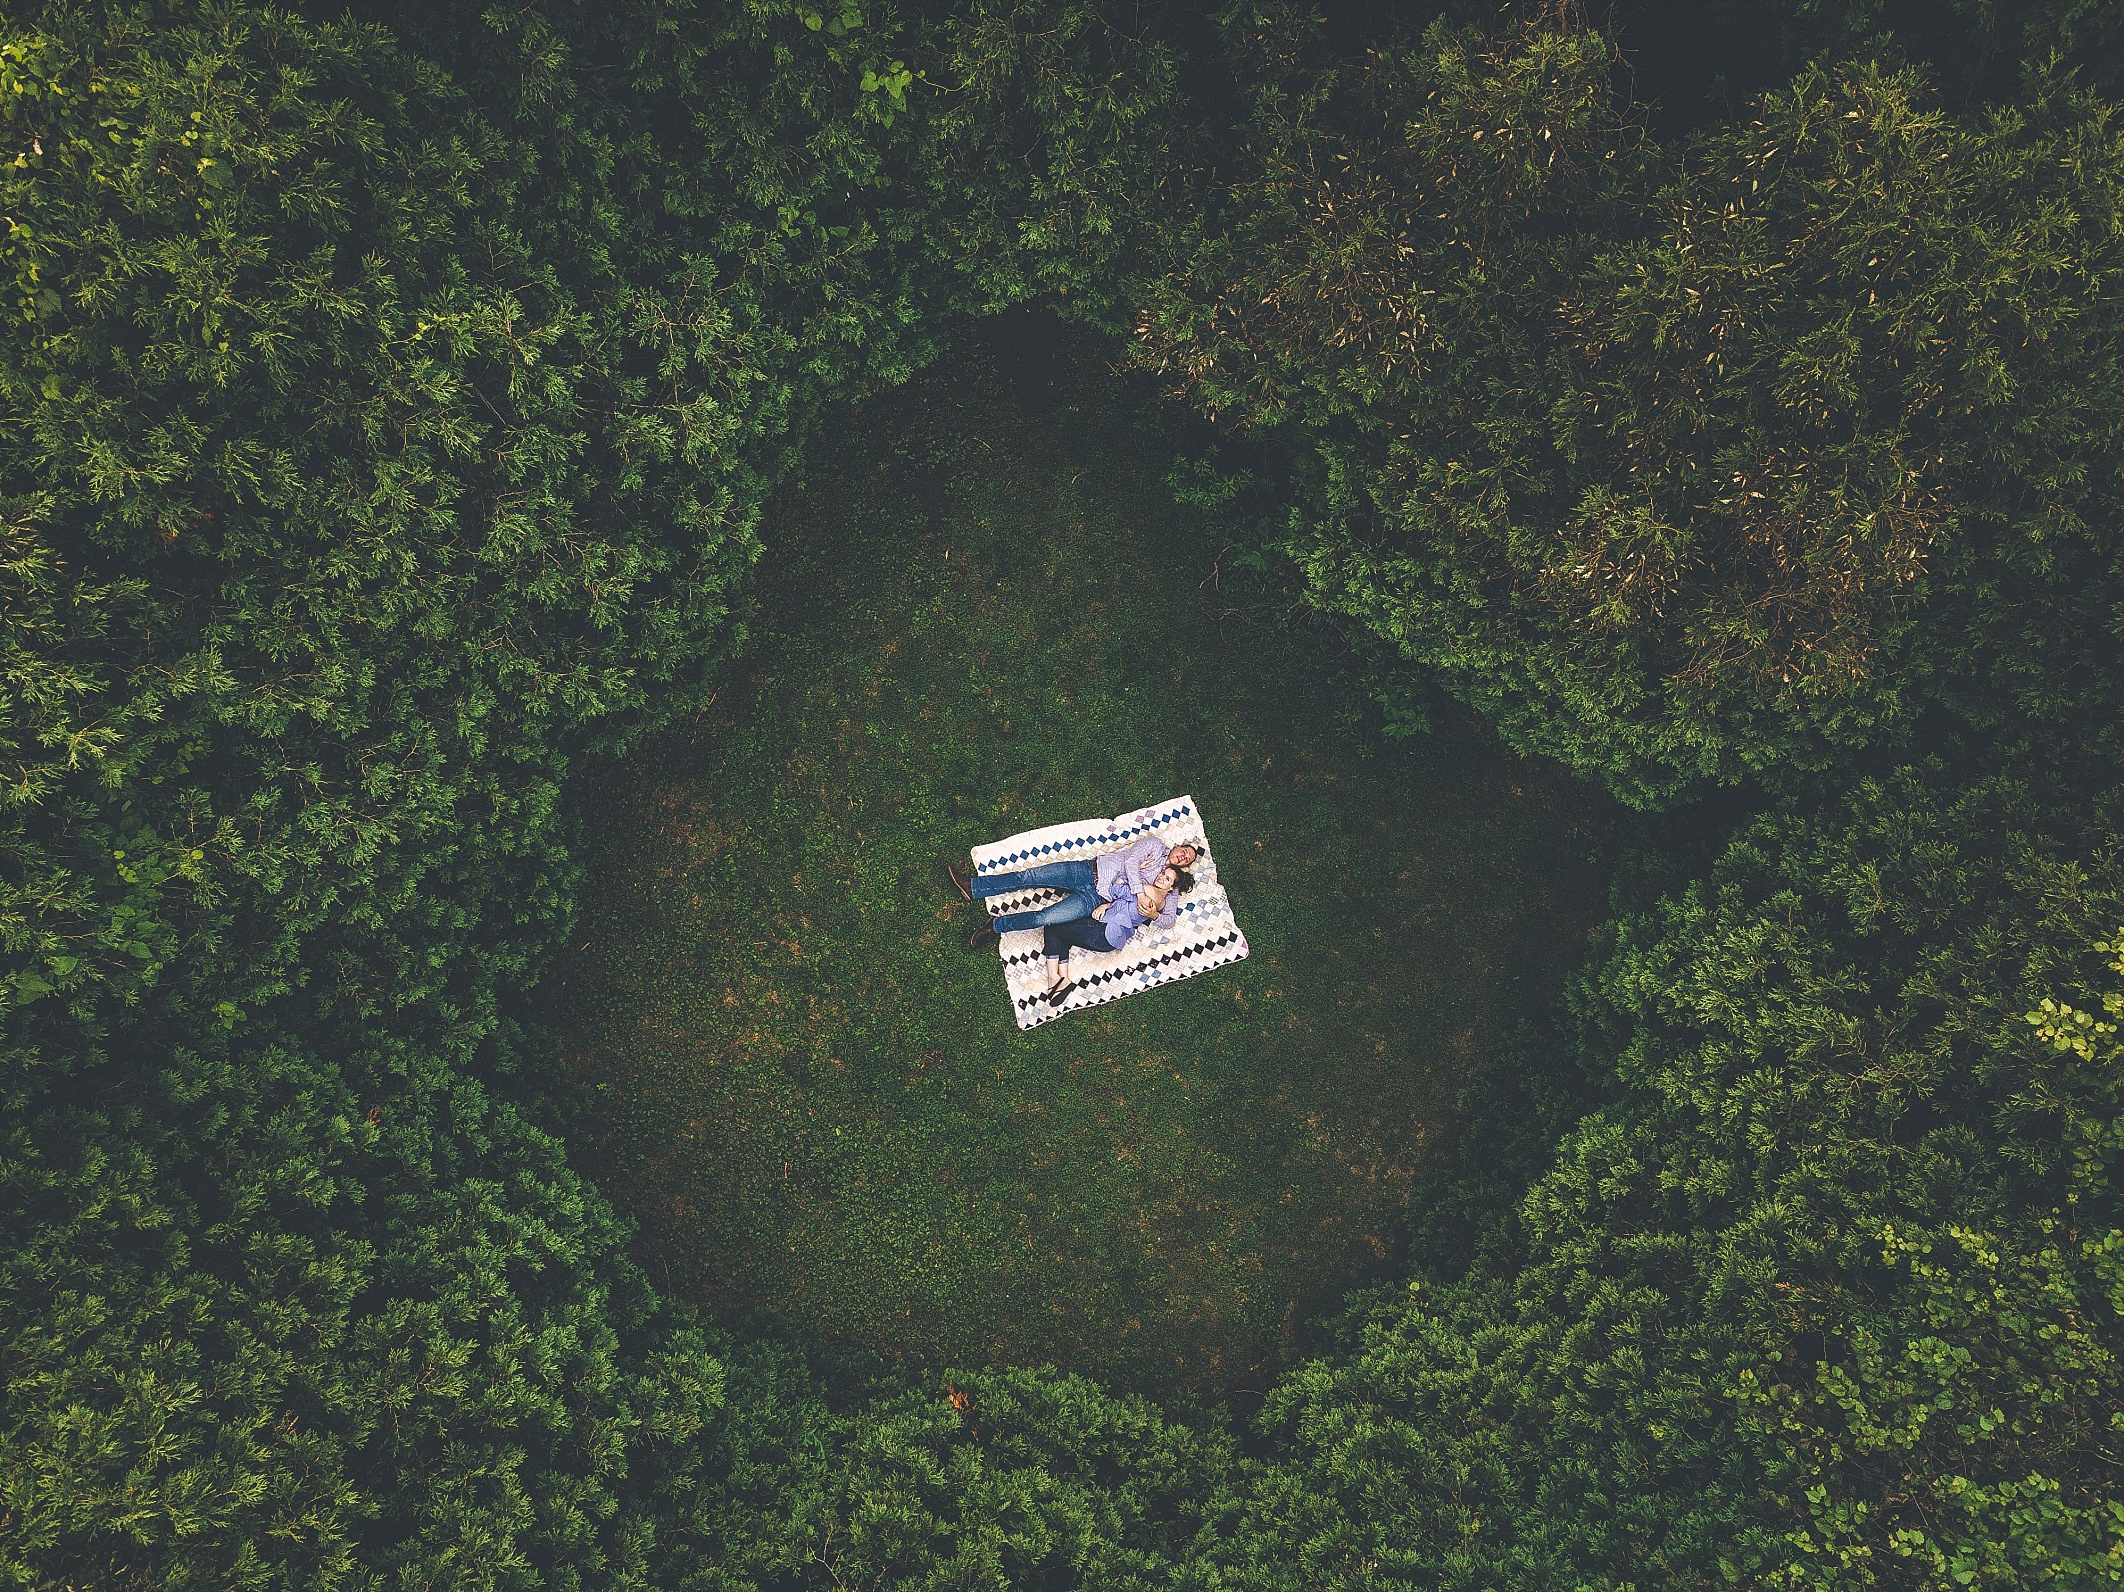 Drone Engagement Photography